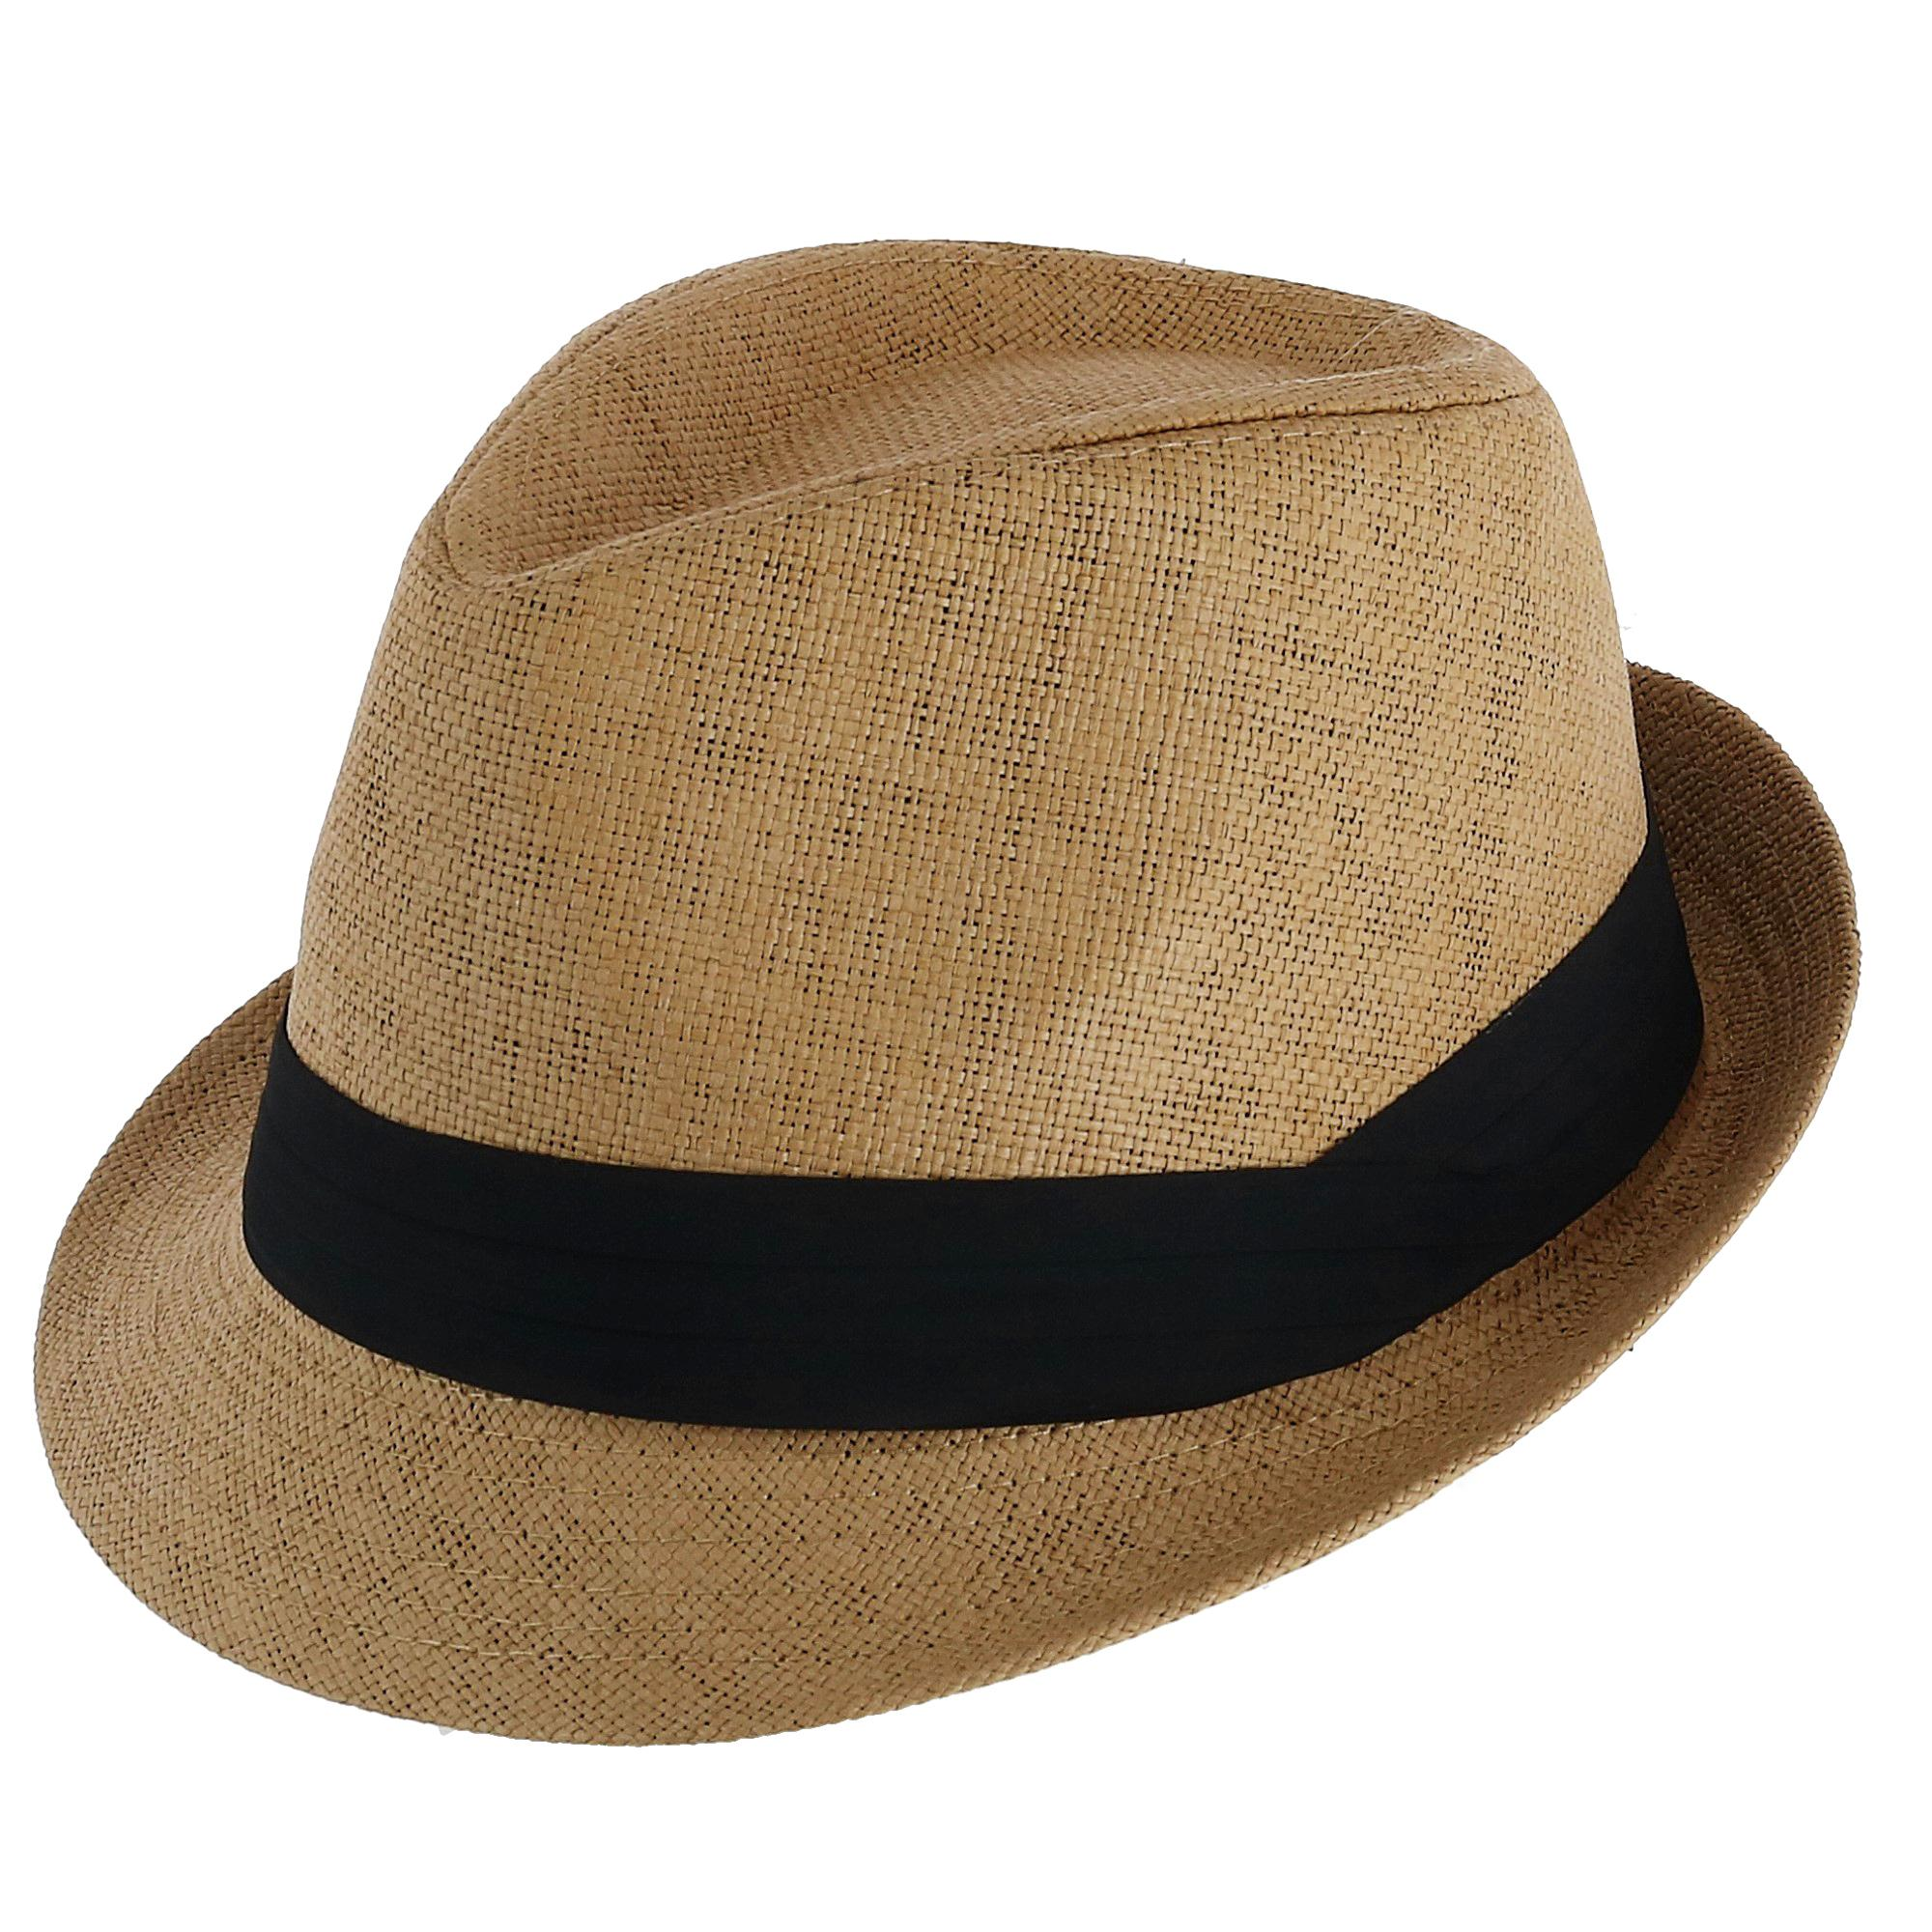 3fc4660185034 New Westend Trilby Fedora Hat with Black Band | eBay